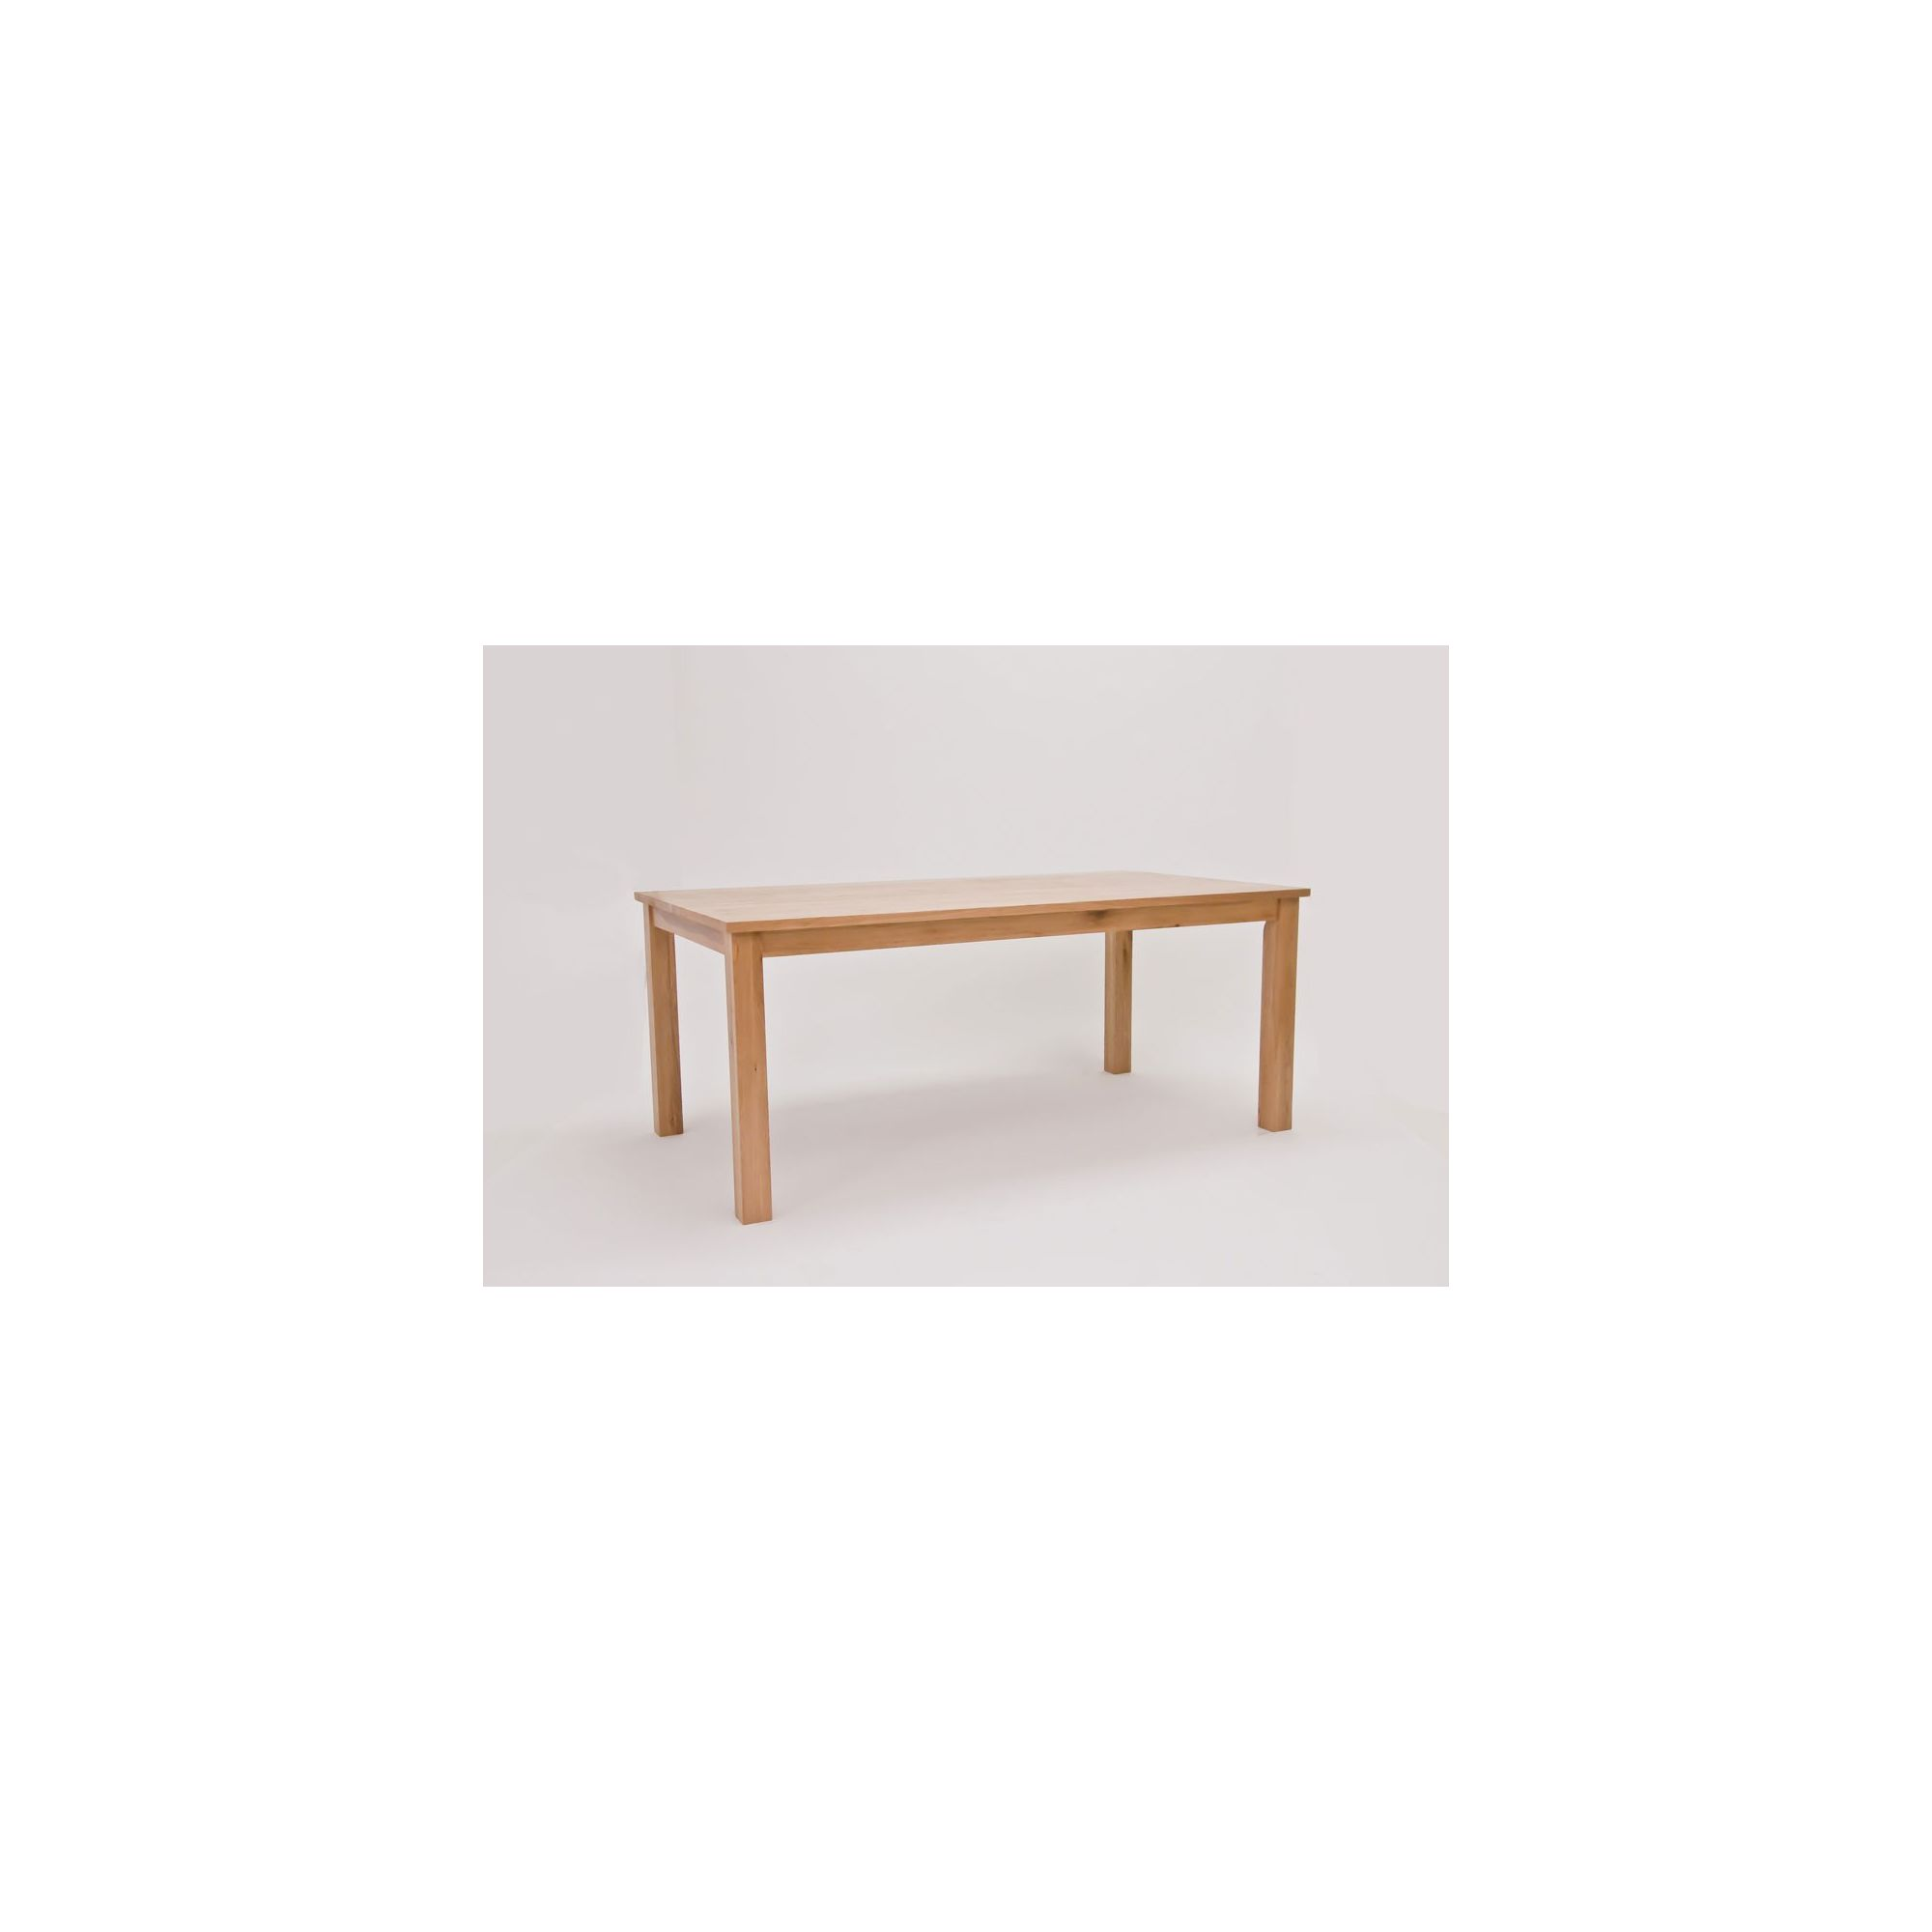 Ametis Lansdown Dining Table - 76.5cm x 183cm x 100cm